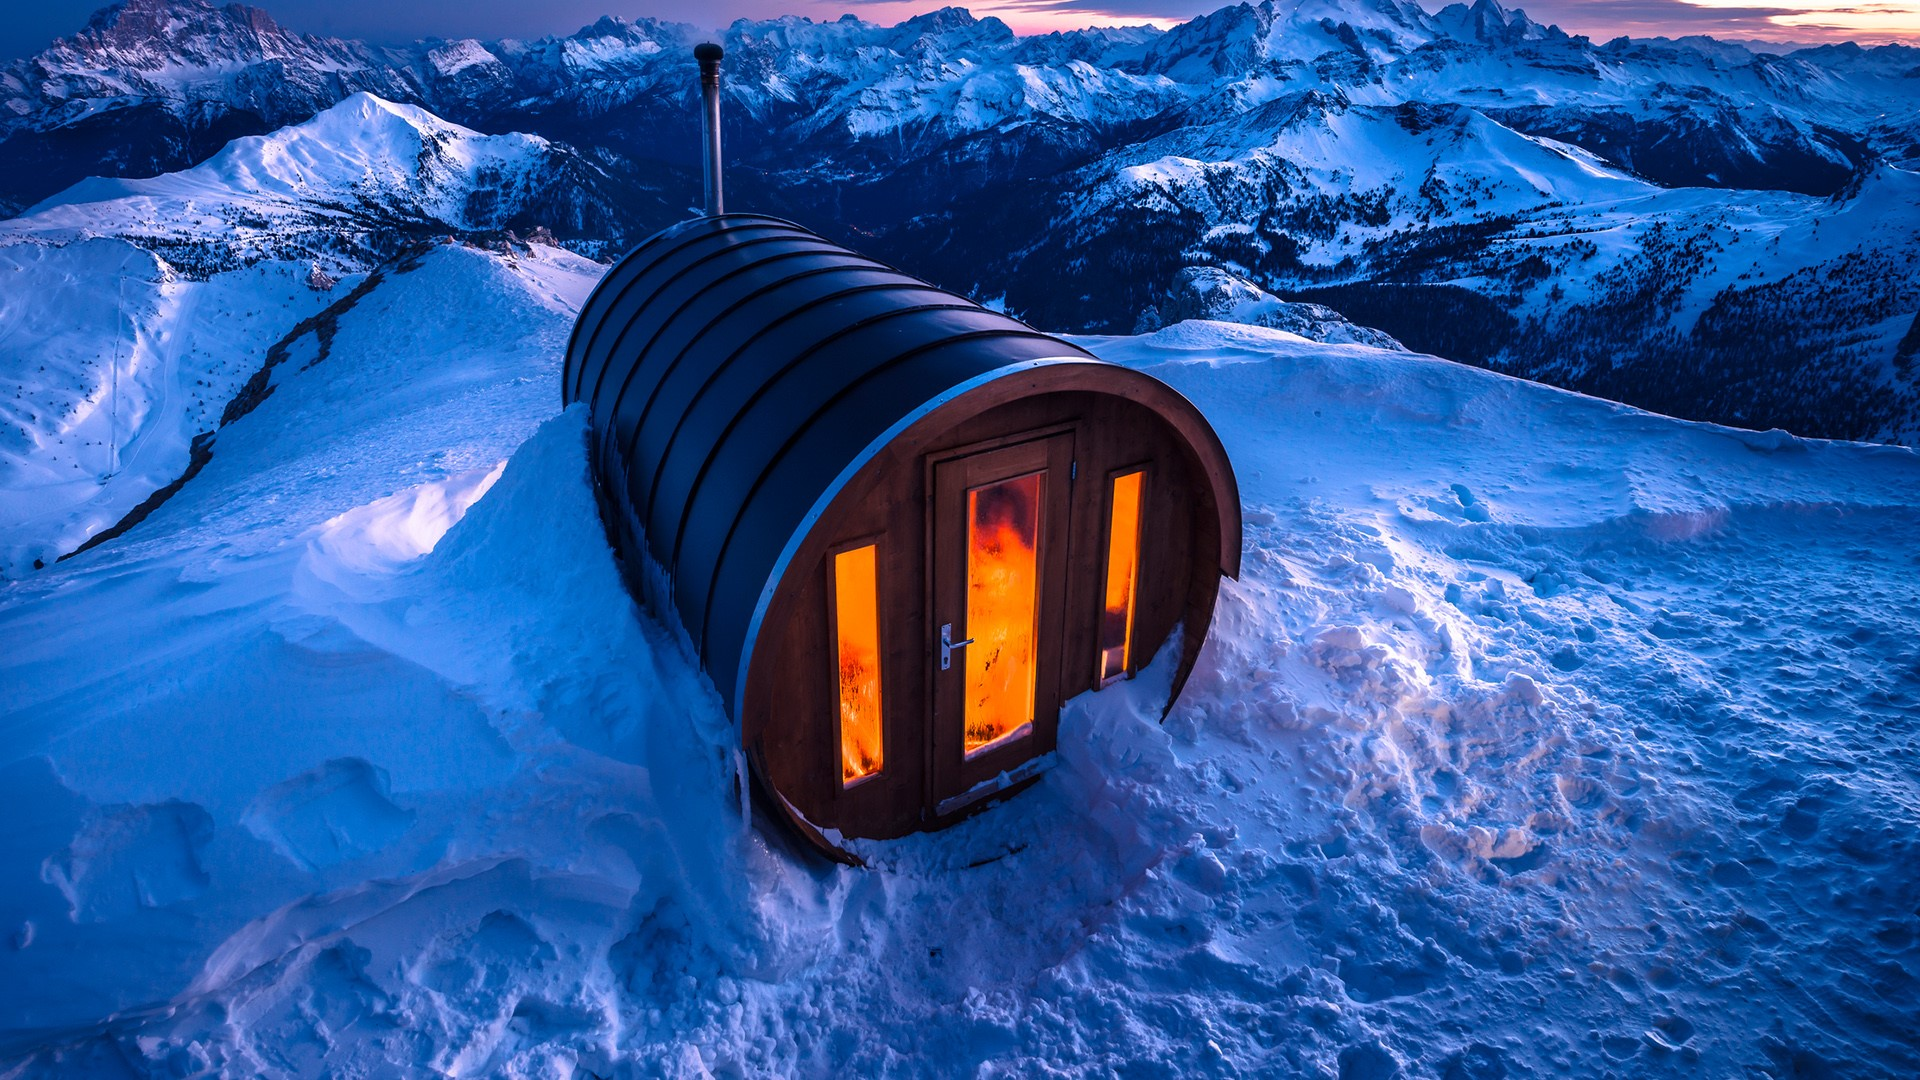 Sauna in Lagazuoi, Dolomites, South Tyrol, Italy.